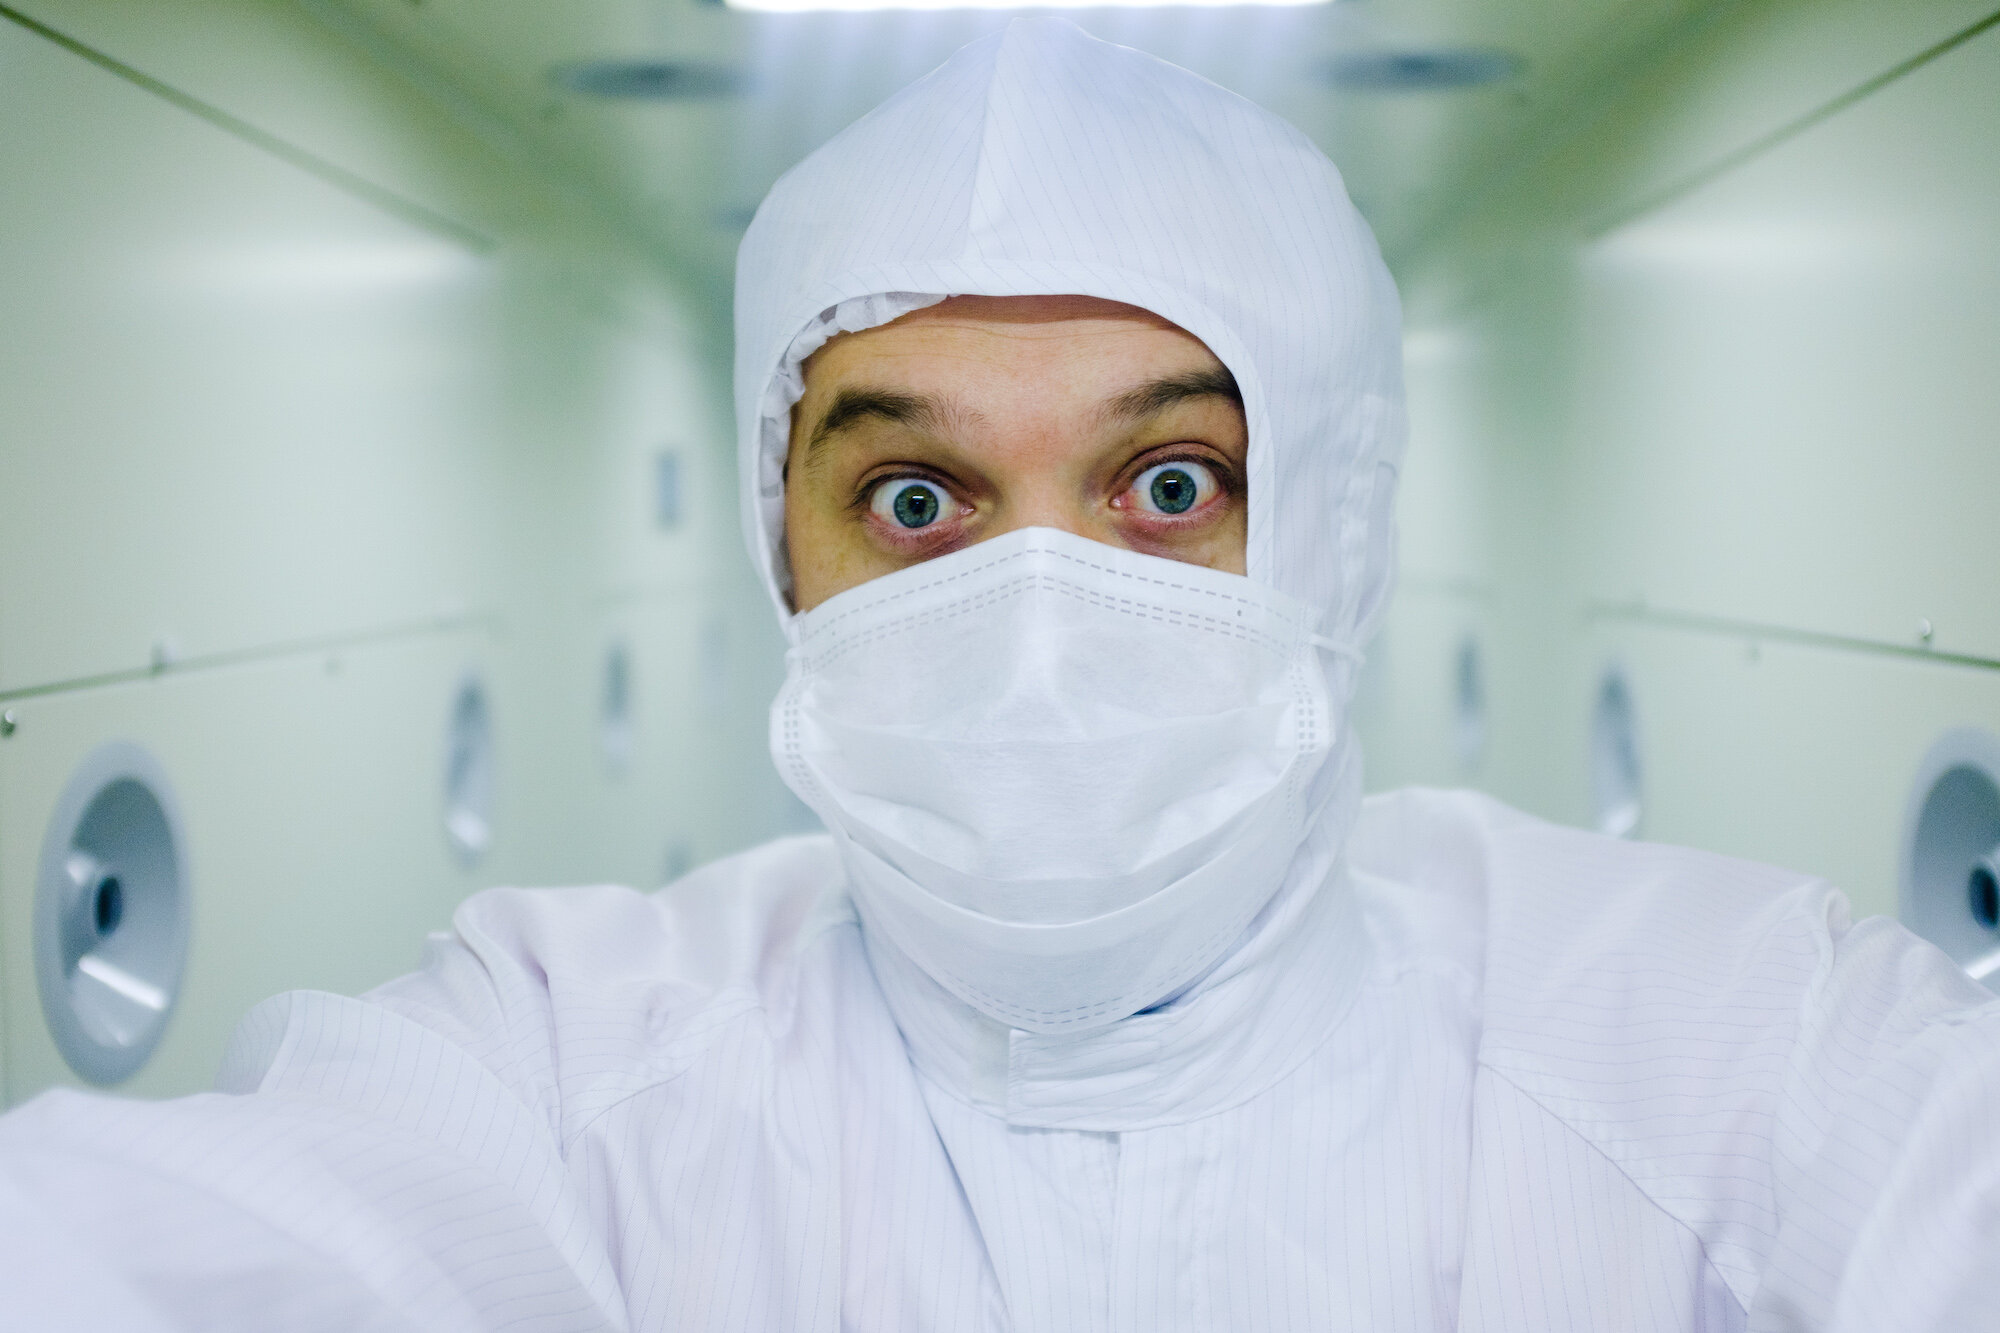 A selfie I took while going through the clean booth at FUJIFILM's factory in Japan.